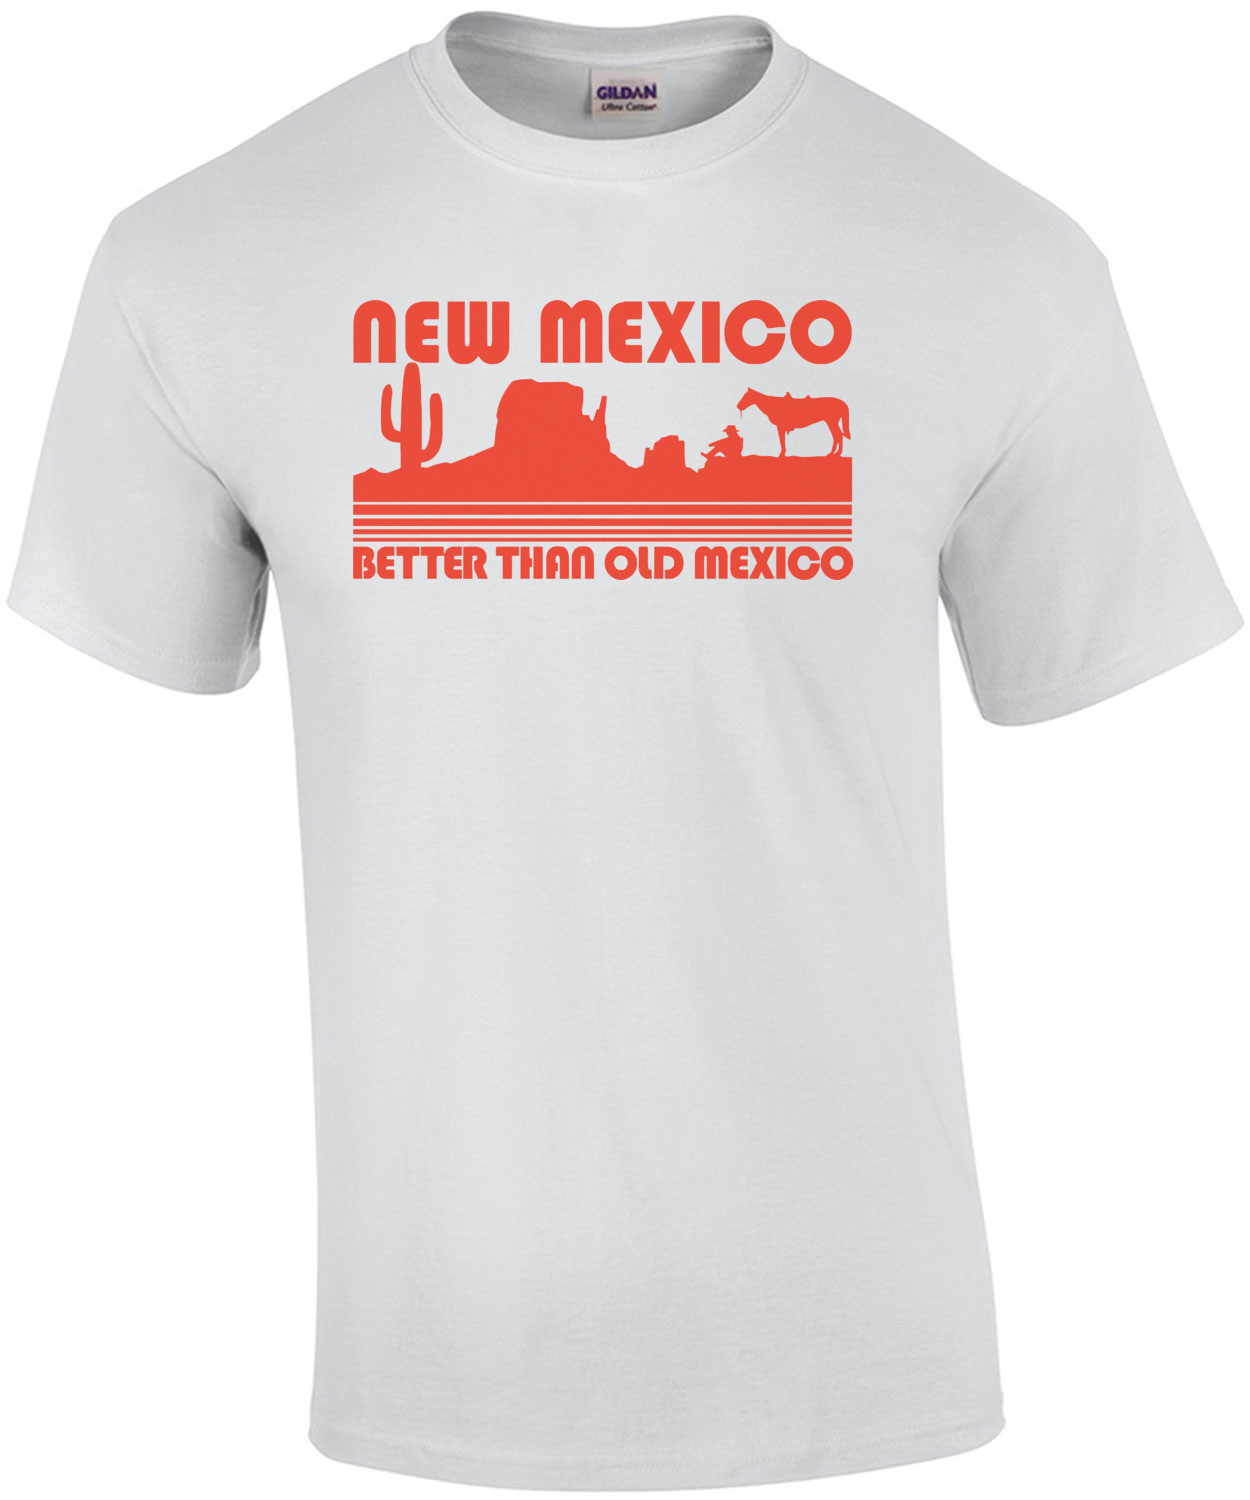 New Mexico - Better Than Old Mexico T-Shirt